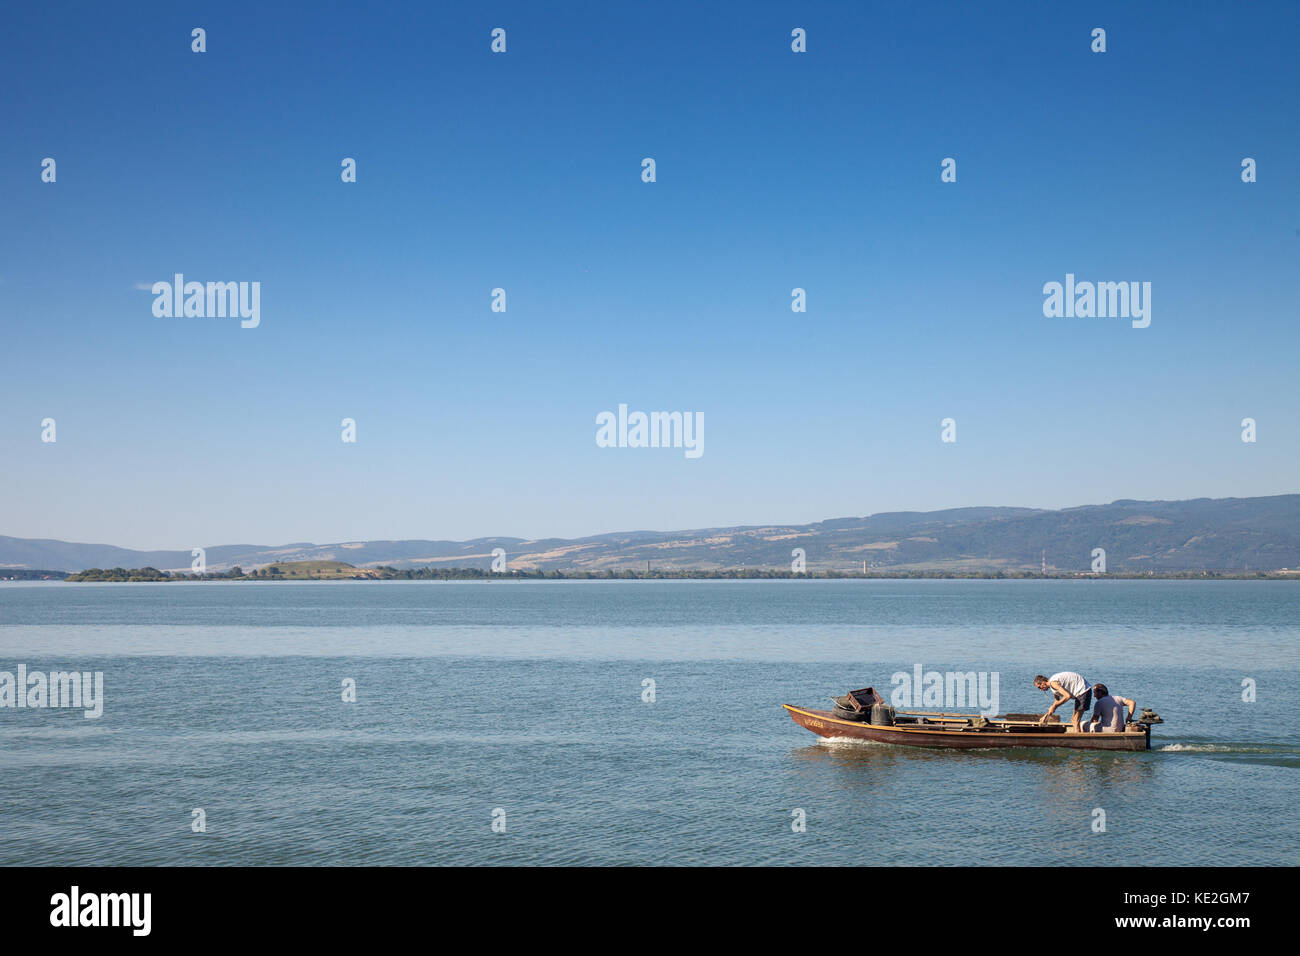 DONJI MILANOVAC, SERBIA - SEPTEMBER 16, 2017: Fishermen fishing on a boat near Donji Milanovac during the afternoon, - Stock Image